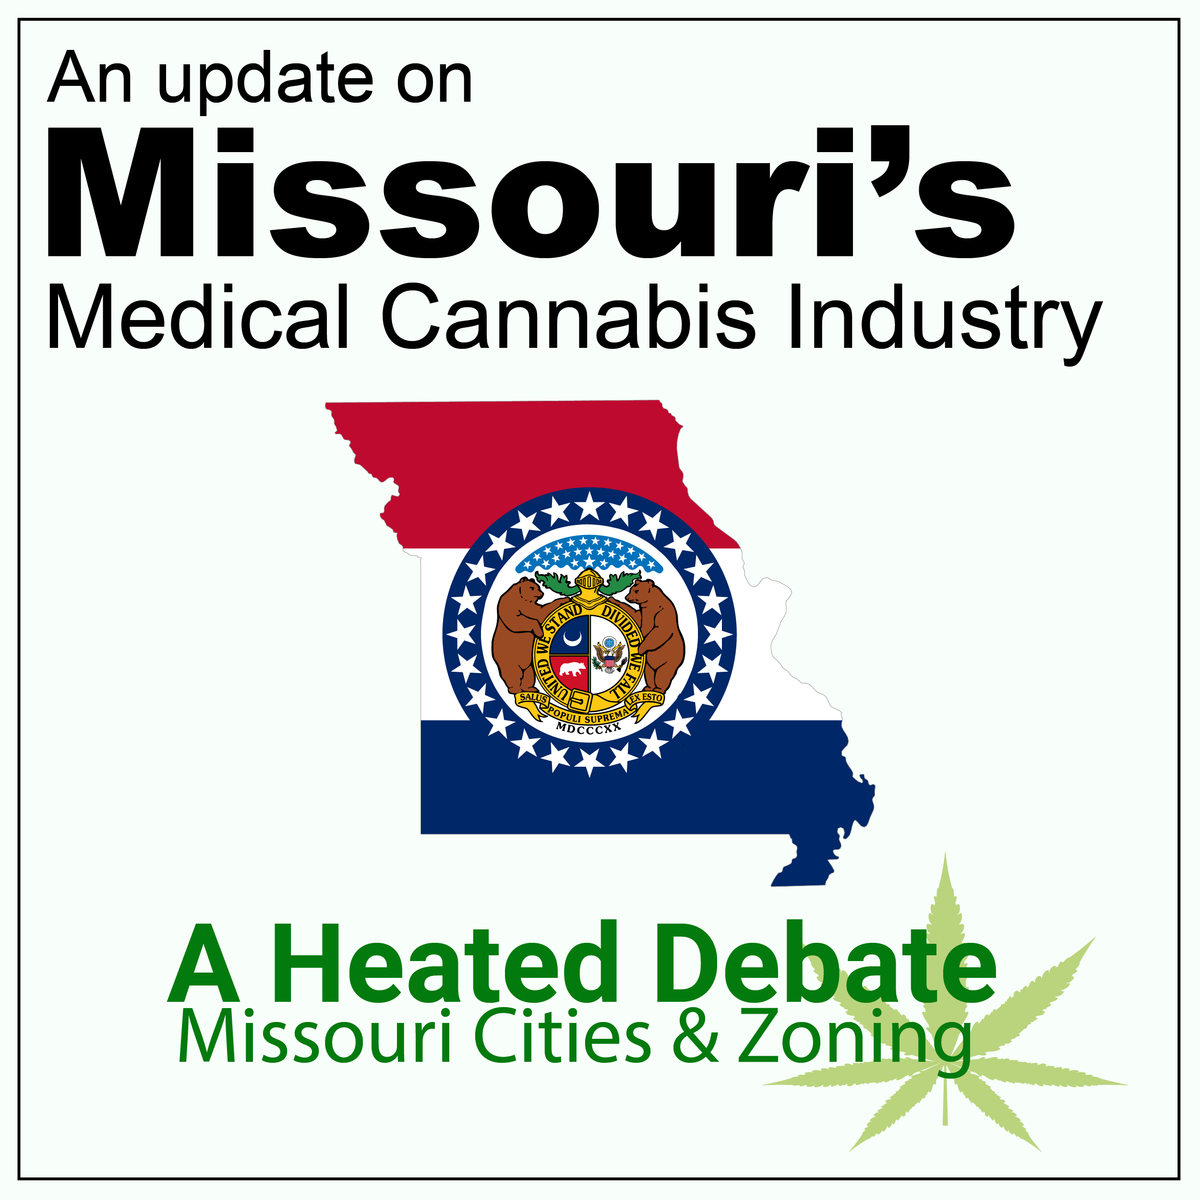 An Update on Missouri's Medical Cannabis Industry - A Debate